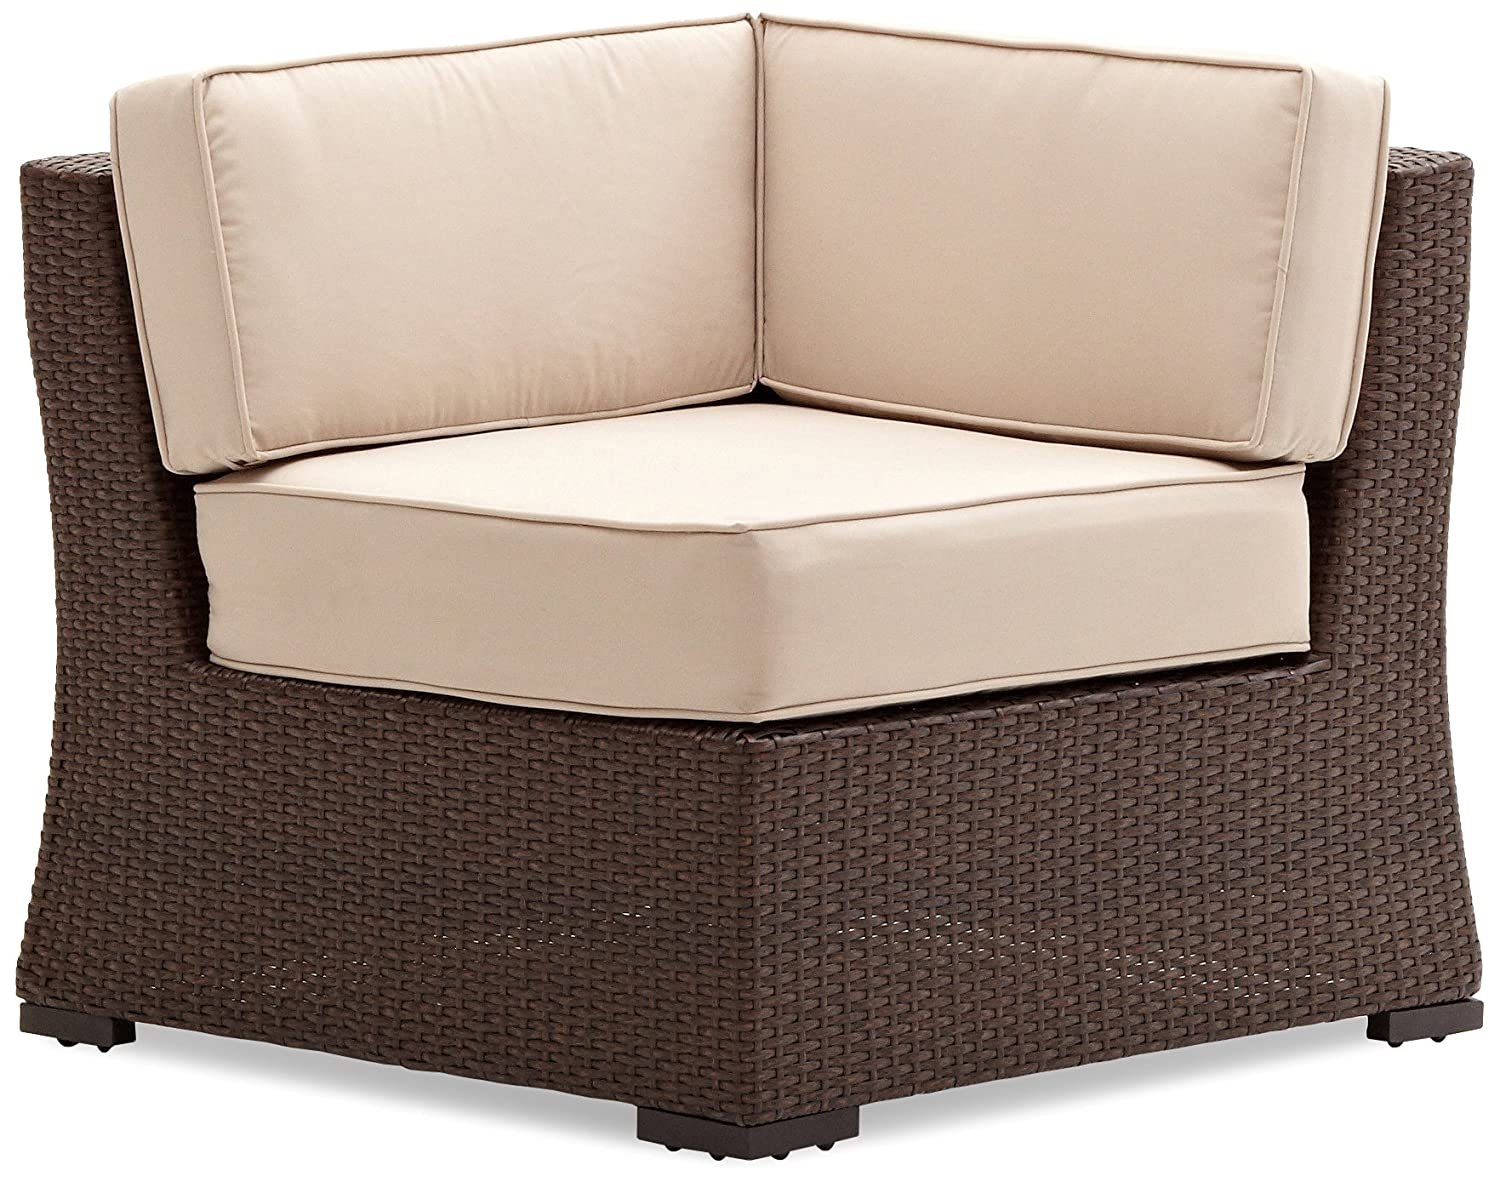 Amazon.com: Strathwood Griffen All-Weather Wicker Sectional Corner Chair,  Dark Brown: Garden & Outdoor